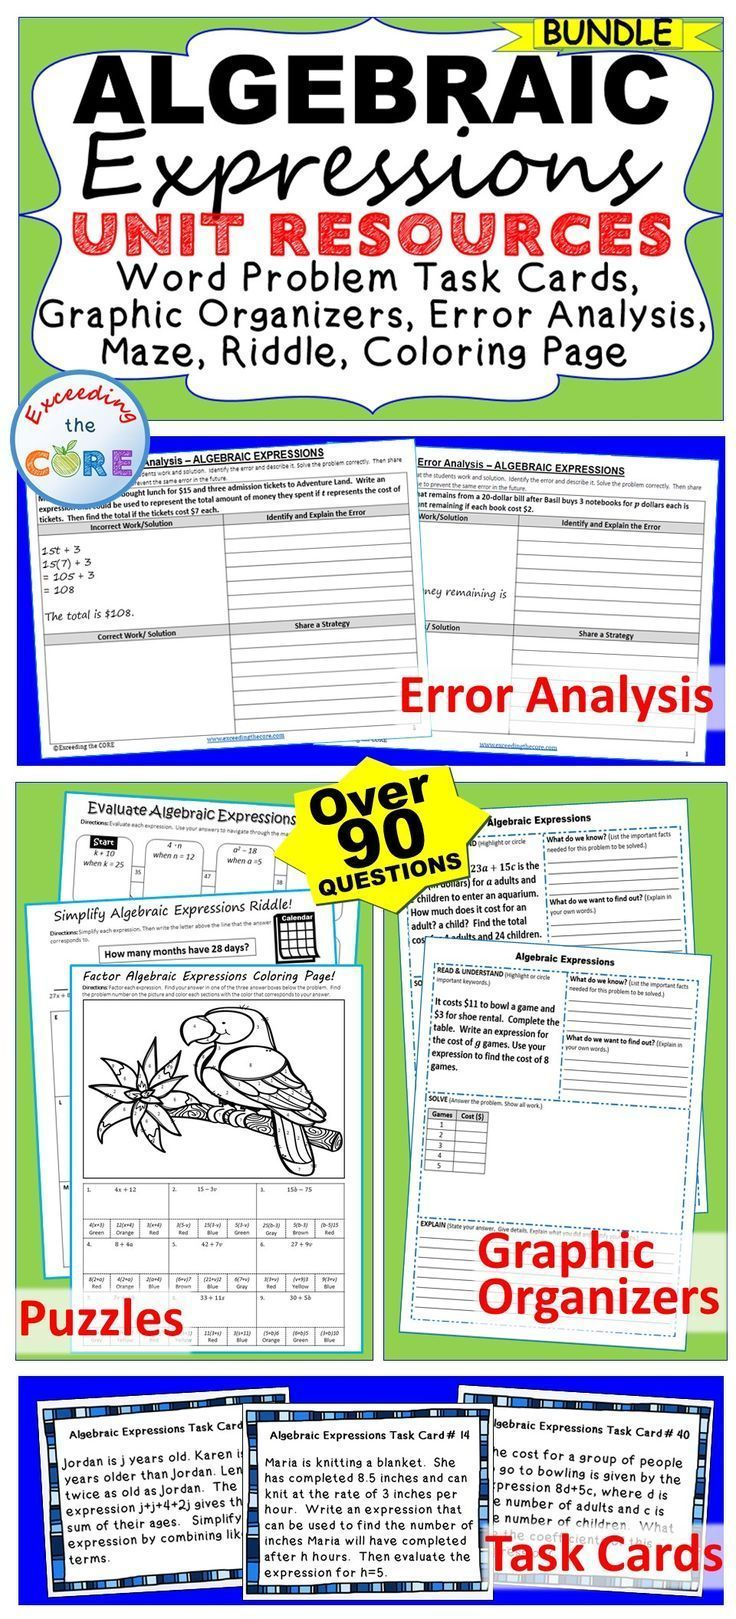 ALGEBRAIC EXPRESSIONS BUNDLE -  Include 40 task cards, 10 error analysis activities, 10 problem solving graphic organizers, 1 maze worksheet, 1 riddle worksheet, 1 coloring page activity (over 90 QUESTIONS). Perfect for warm-ups, spiral review, math stations, assessment prep &homework.  Topics :  Evaluating Algebraic Expressions,  Writing Algebraic Expressions,  Simplifying Expressions, Factoring Algebraic Expressions, 6th grade math common core 6.EE.1, 6.EE.2, 6.EE.3, 6.EE.4